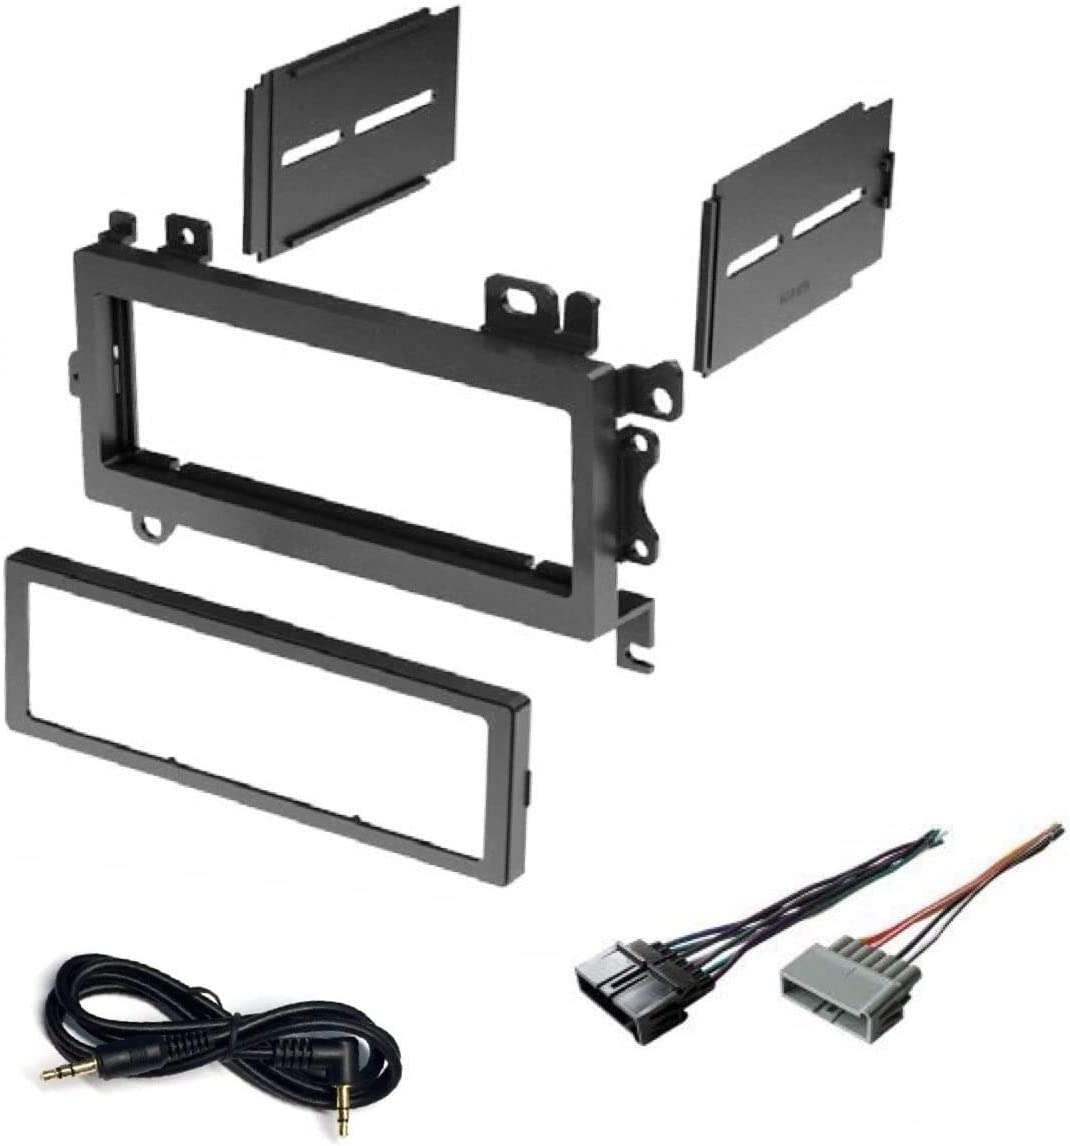 Amazon.com: Car Stereo Dash Kit and Wire Harness for Installing a New  Single Din Radio for 1997-2001 Jeep Cherokee, 1992-1998 Jeep Grand  Cherokee, 1997-2002 Jeep Wrangler: Car Electronics | 1998 Jeep Wrangler Wiring Harness |  | Amazon.com